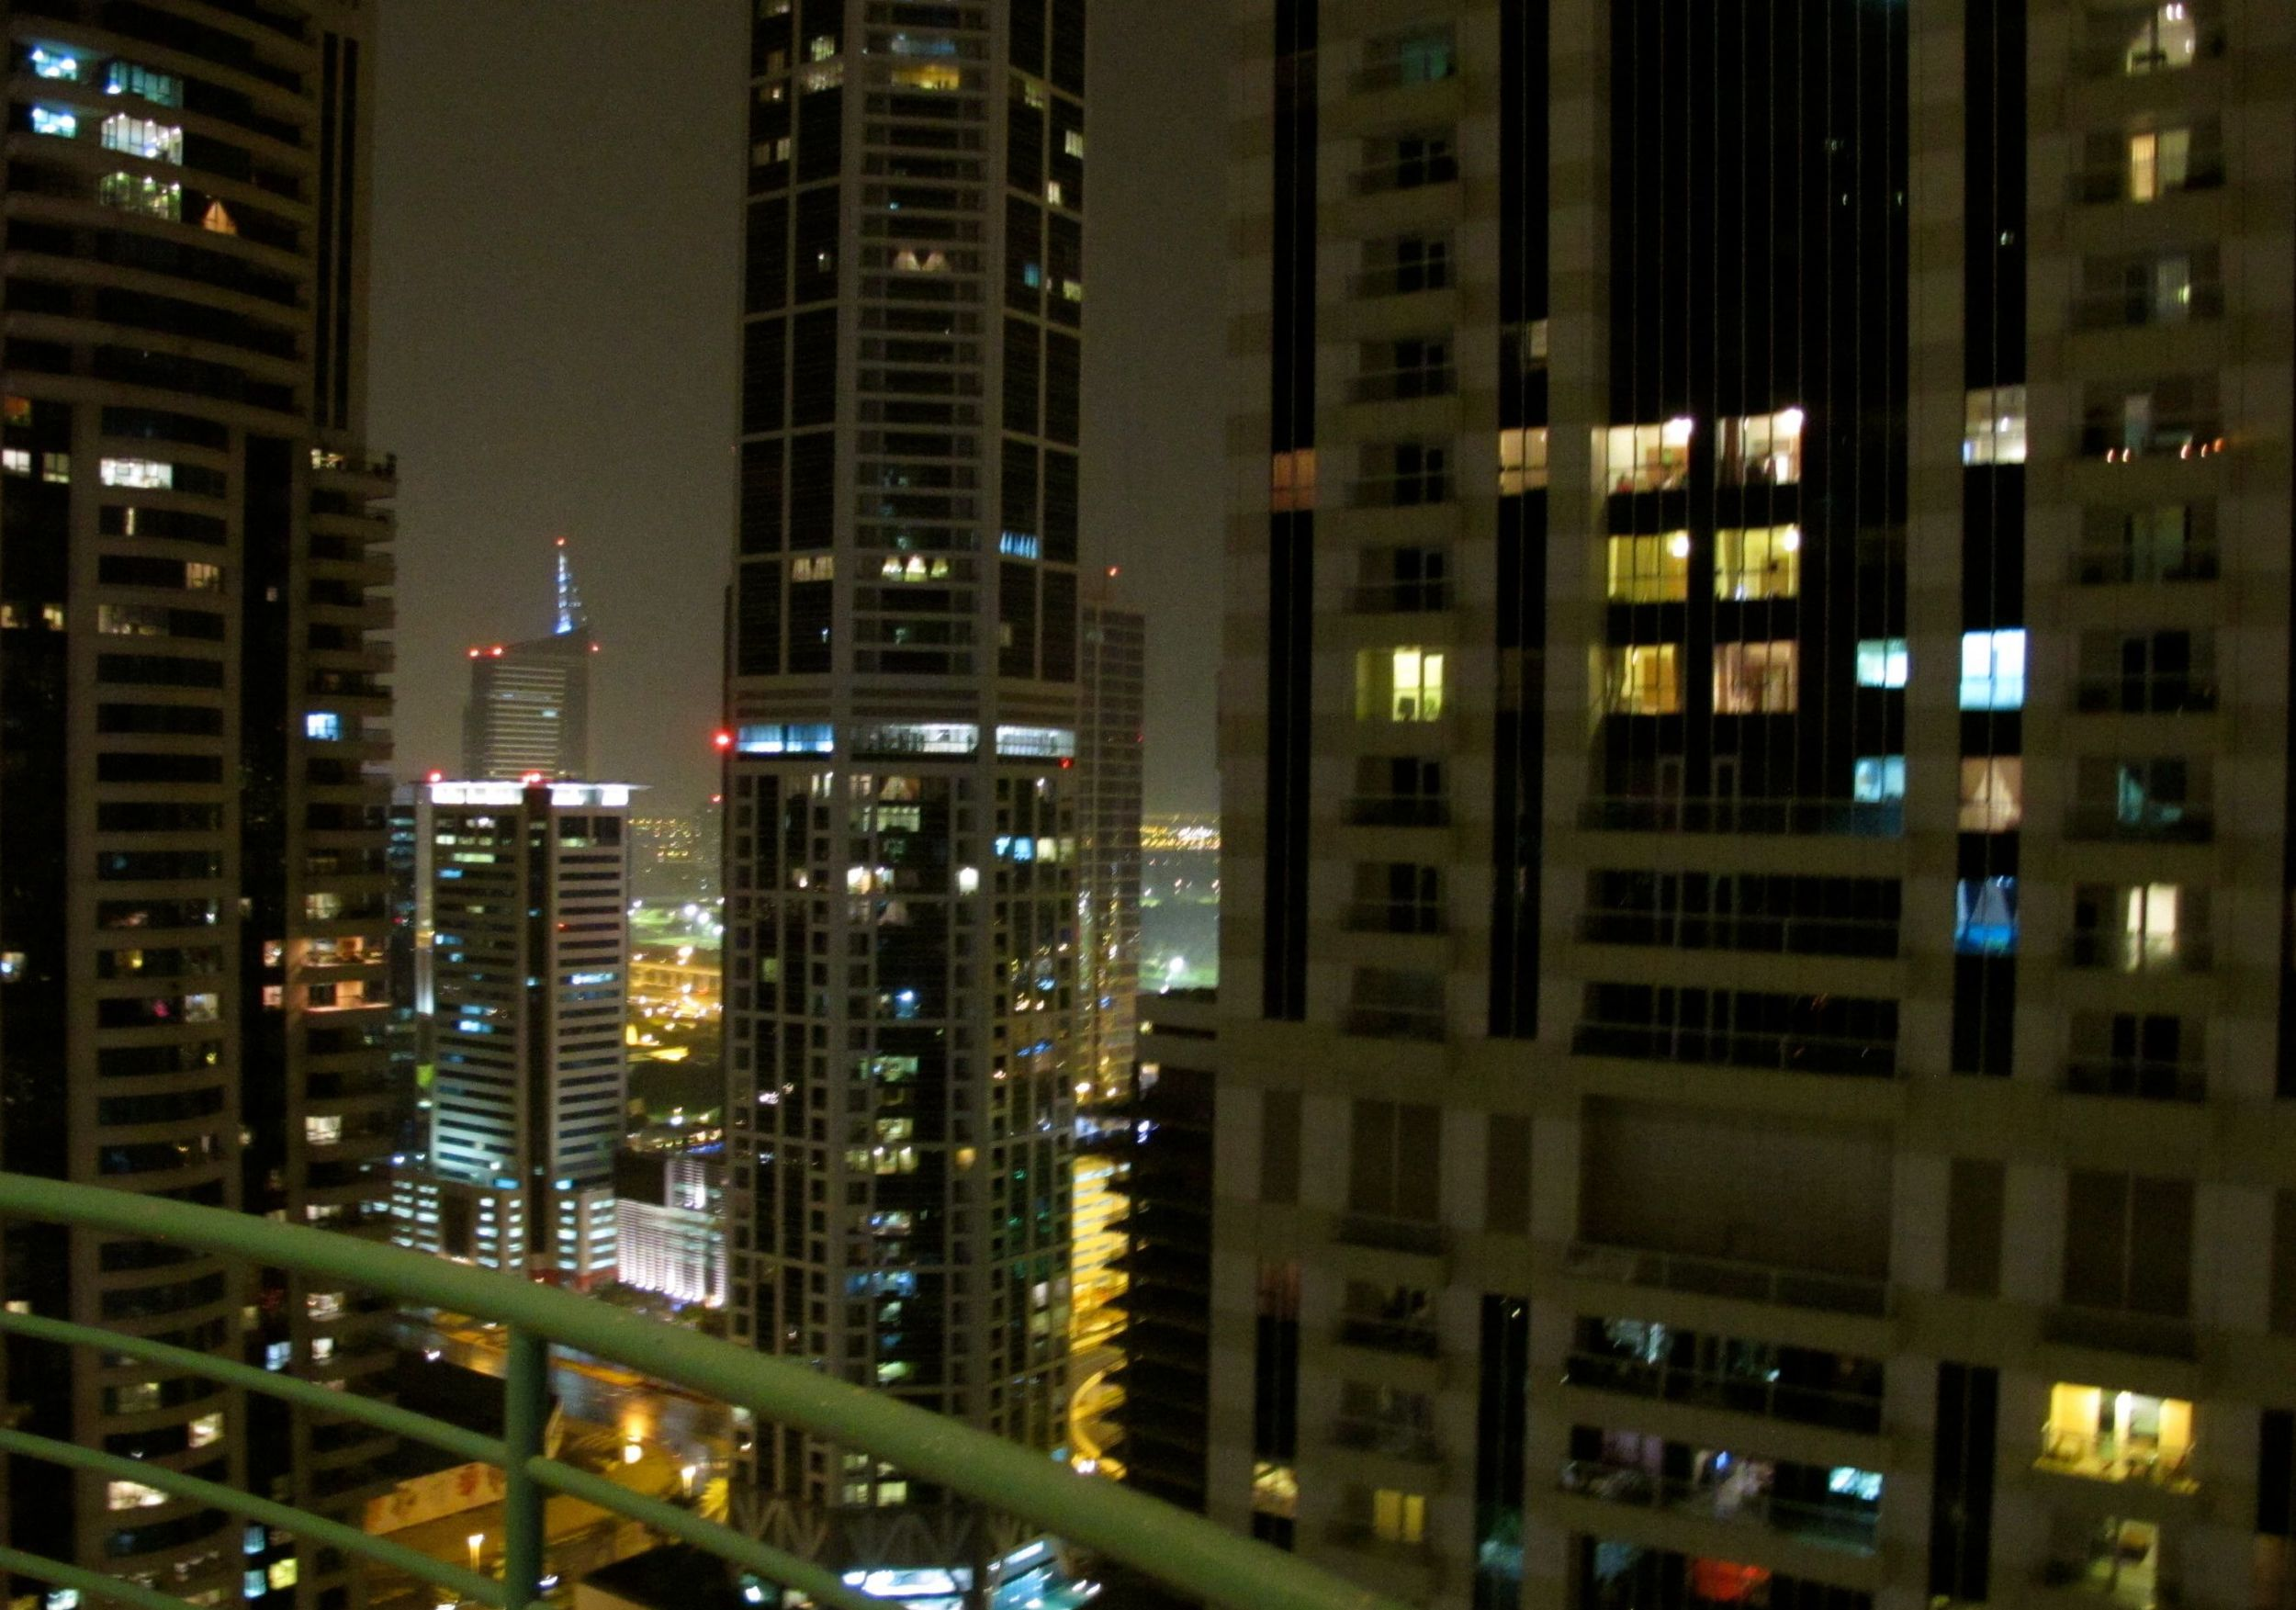 Night views from Barbie's penthouse